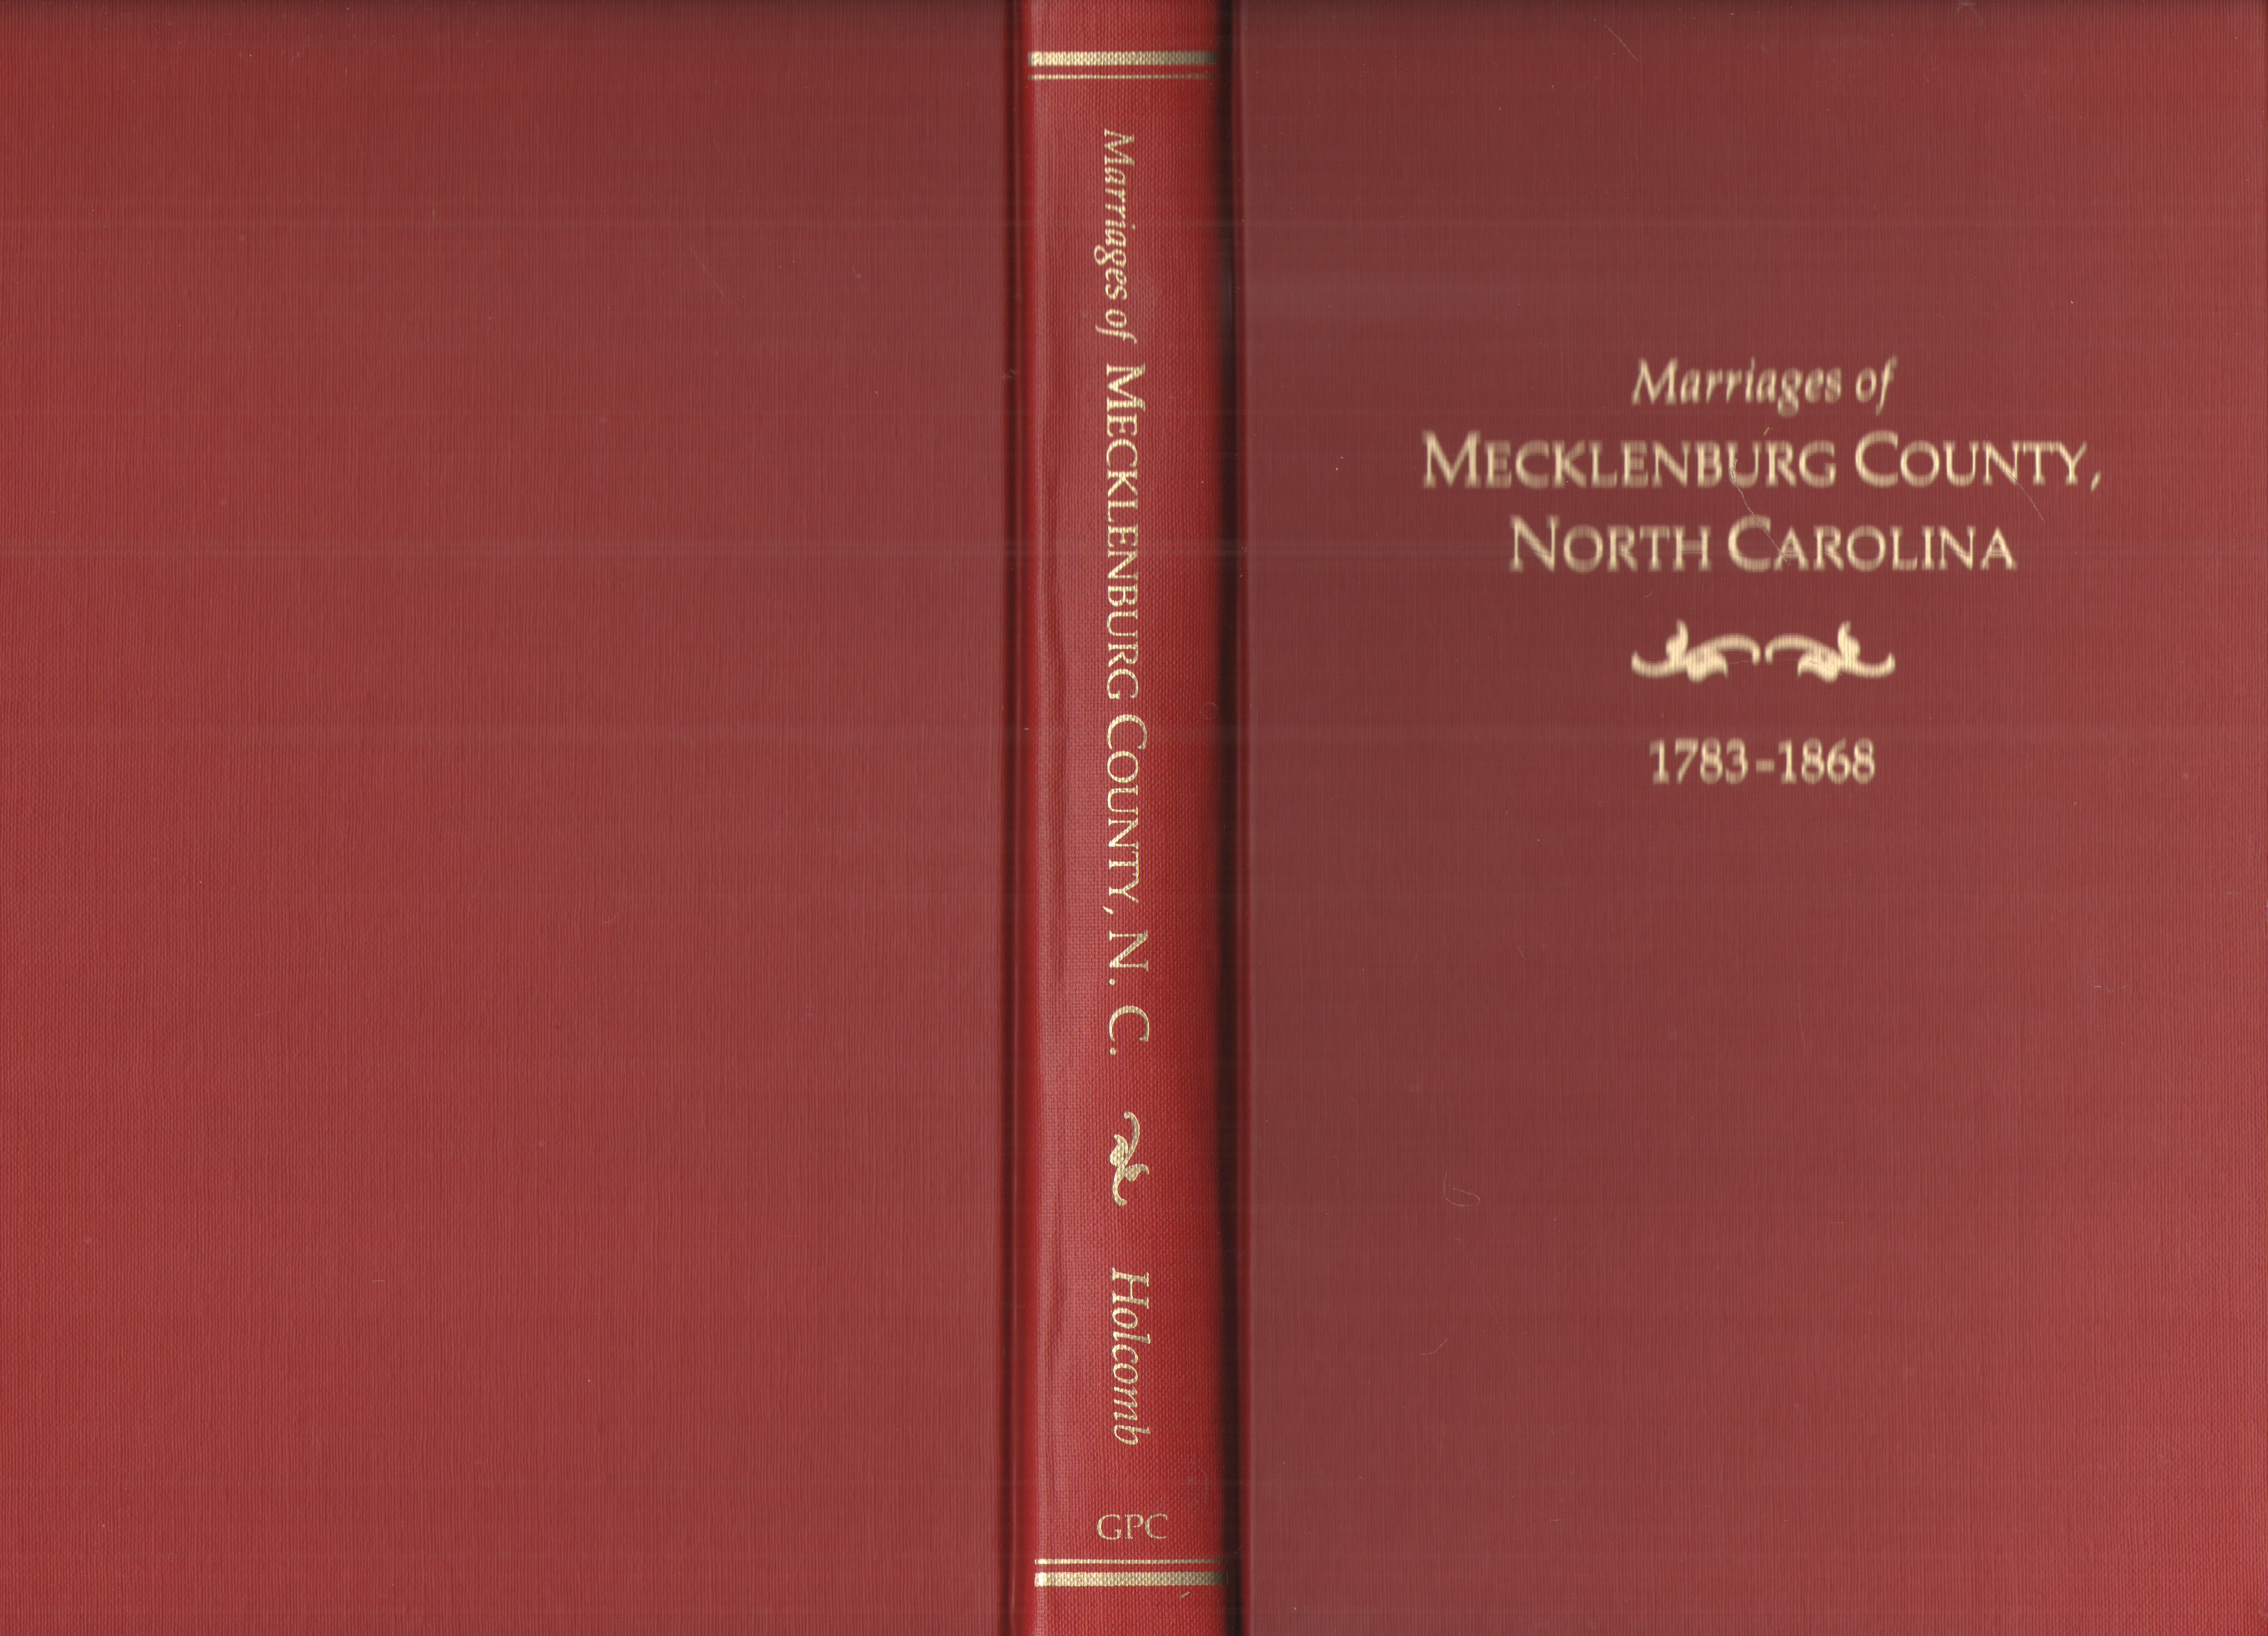 Image for Marriages of Mecklenburg County, North Carolina, 1783-1868